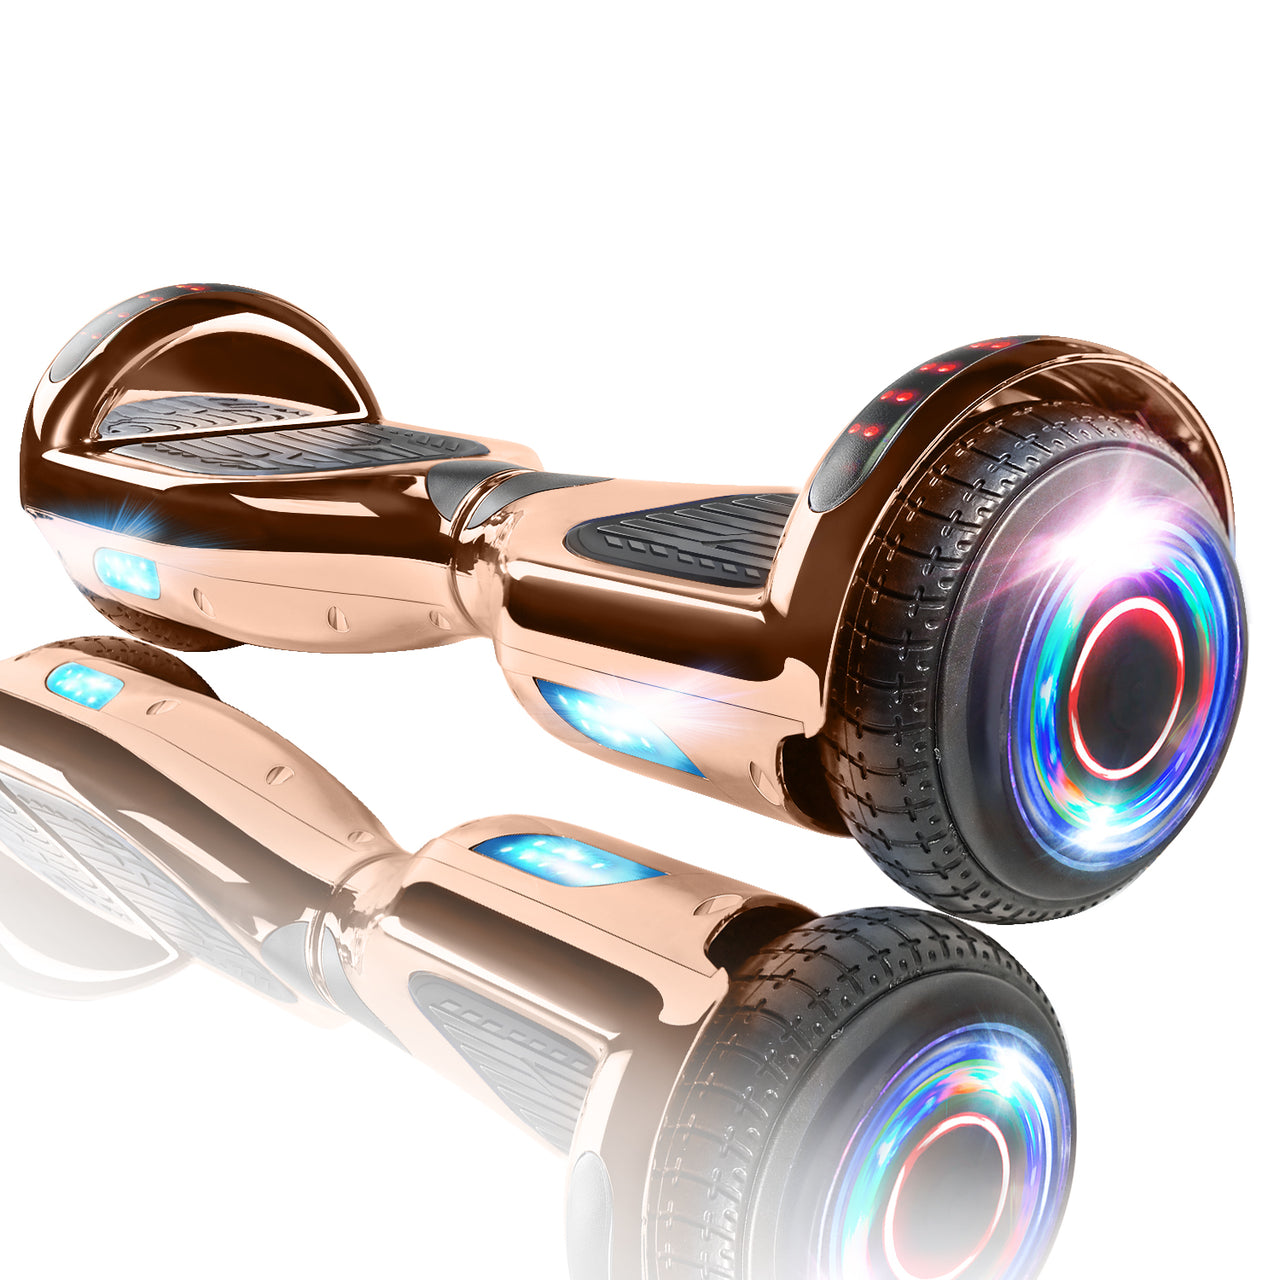 "XPRIT 6.5"" Rosegold Hoverboard UL2272 certified with Wireless Speaker Free Shipping."